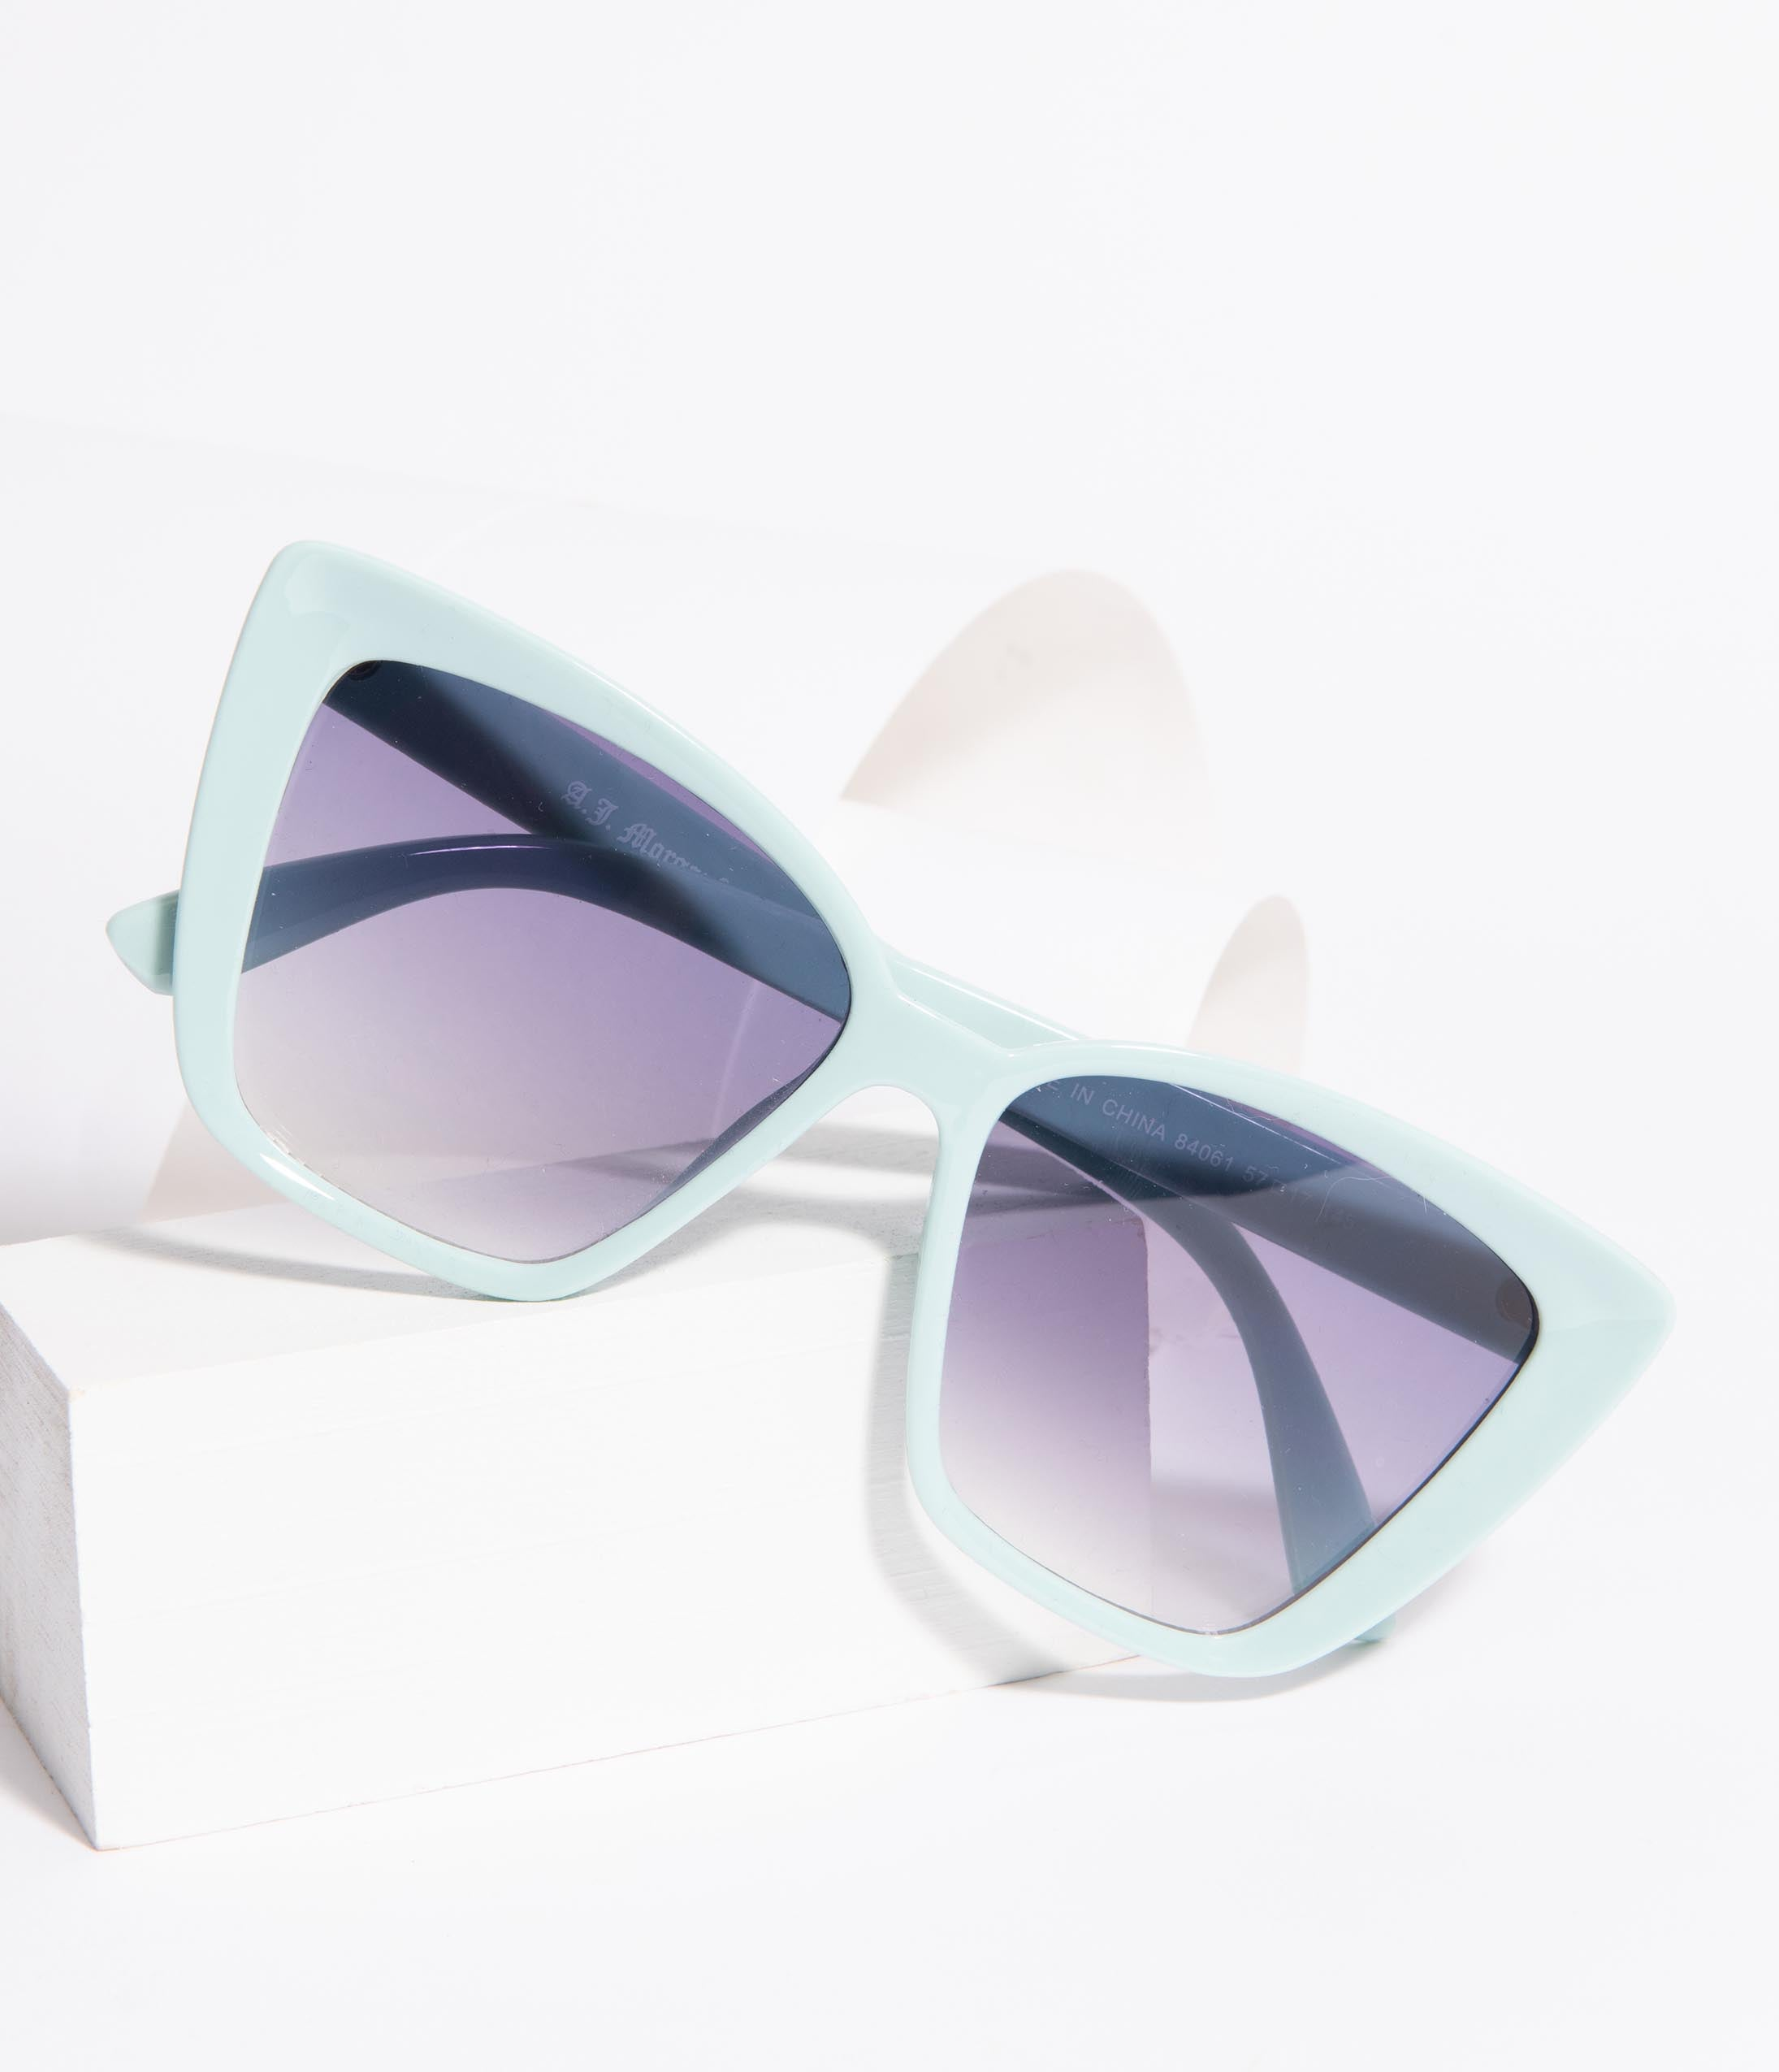 What Did Women Wear in the 1950s? 1950s Fashion Guide Teal Mint Square Cat Eye Oversized Sunglasses $24.00 AT vintagedancer.com